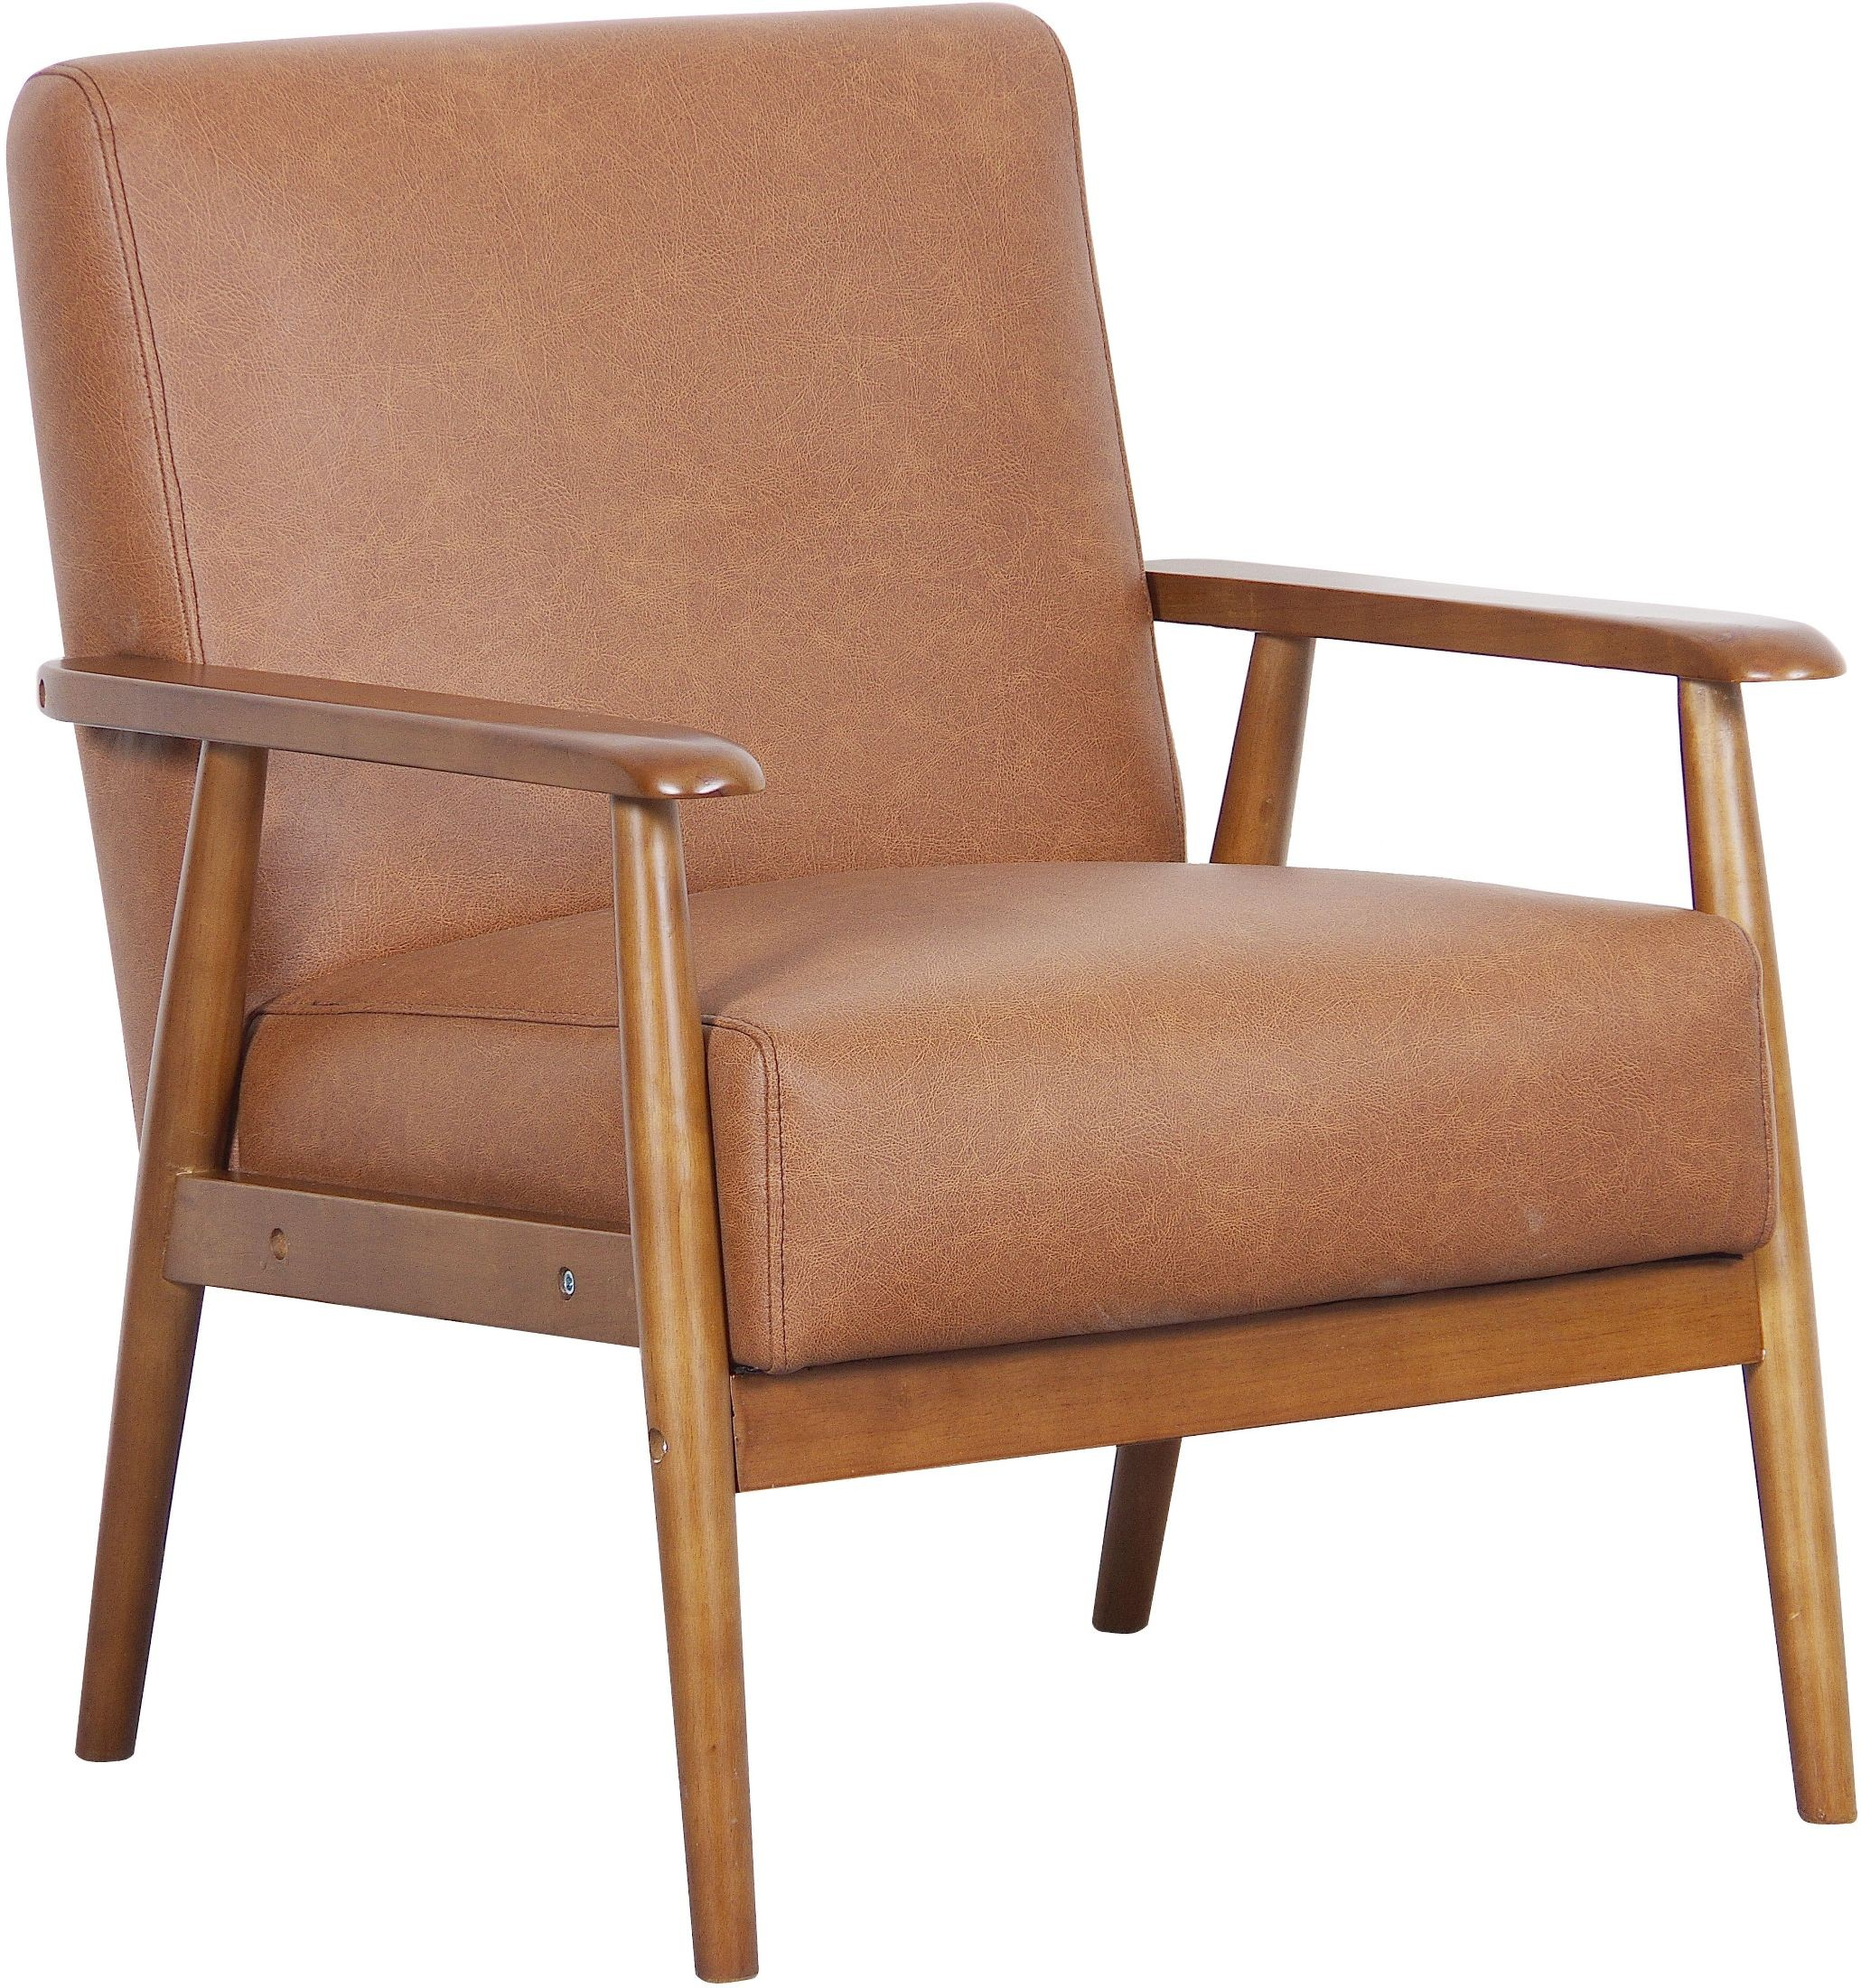 X. Lummus Cognac Wood Frame Upholstered Accent Chair